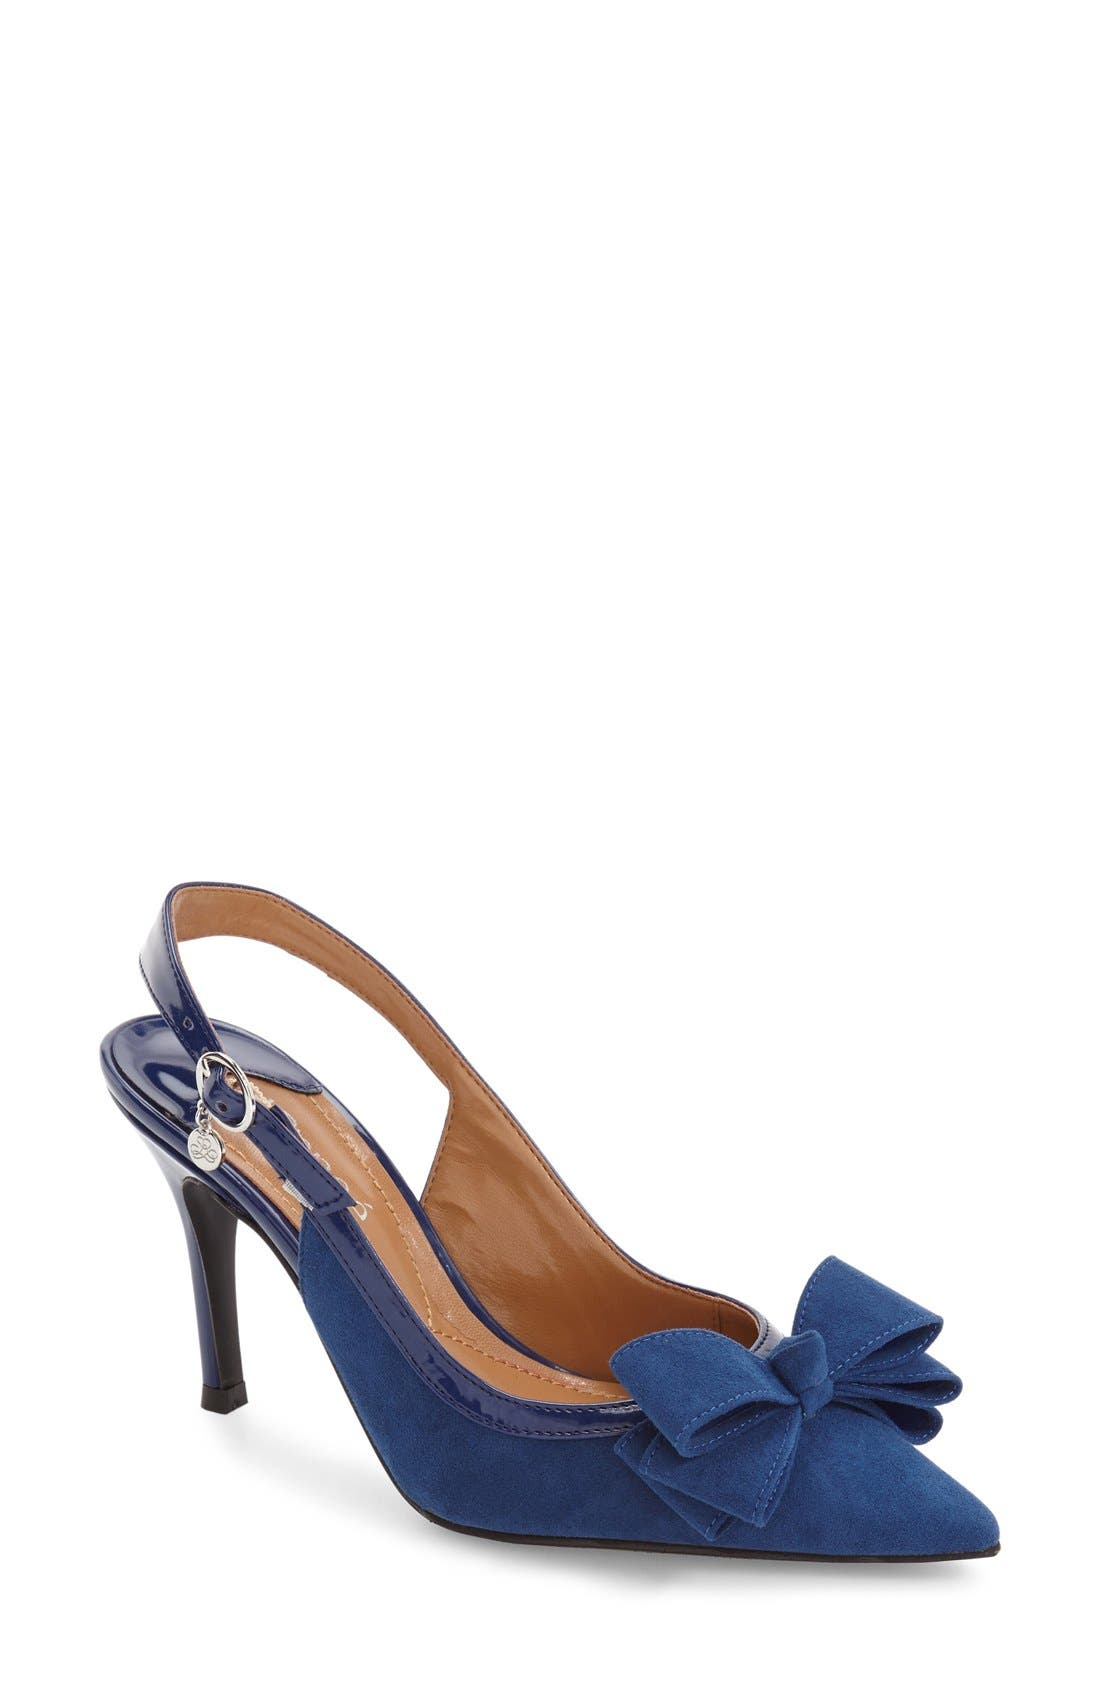 Charis Slingback Bow Pump,                             Main thumbnail 1, color,                             Imperial Blue Faux Suede